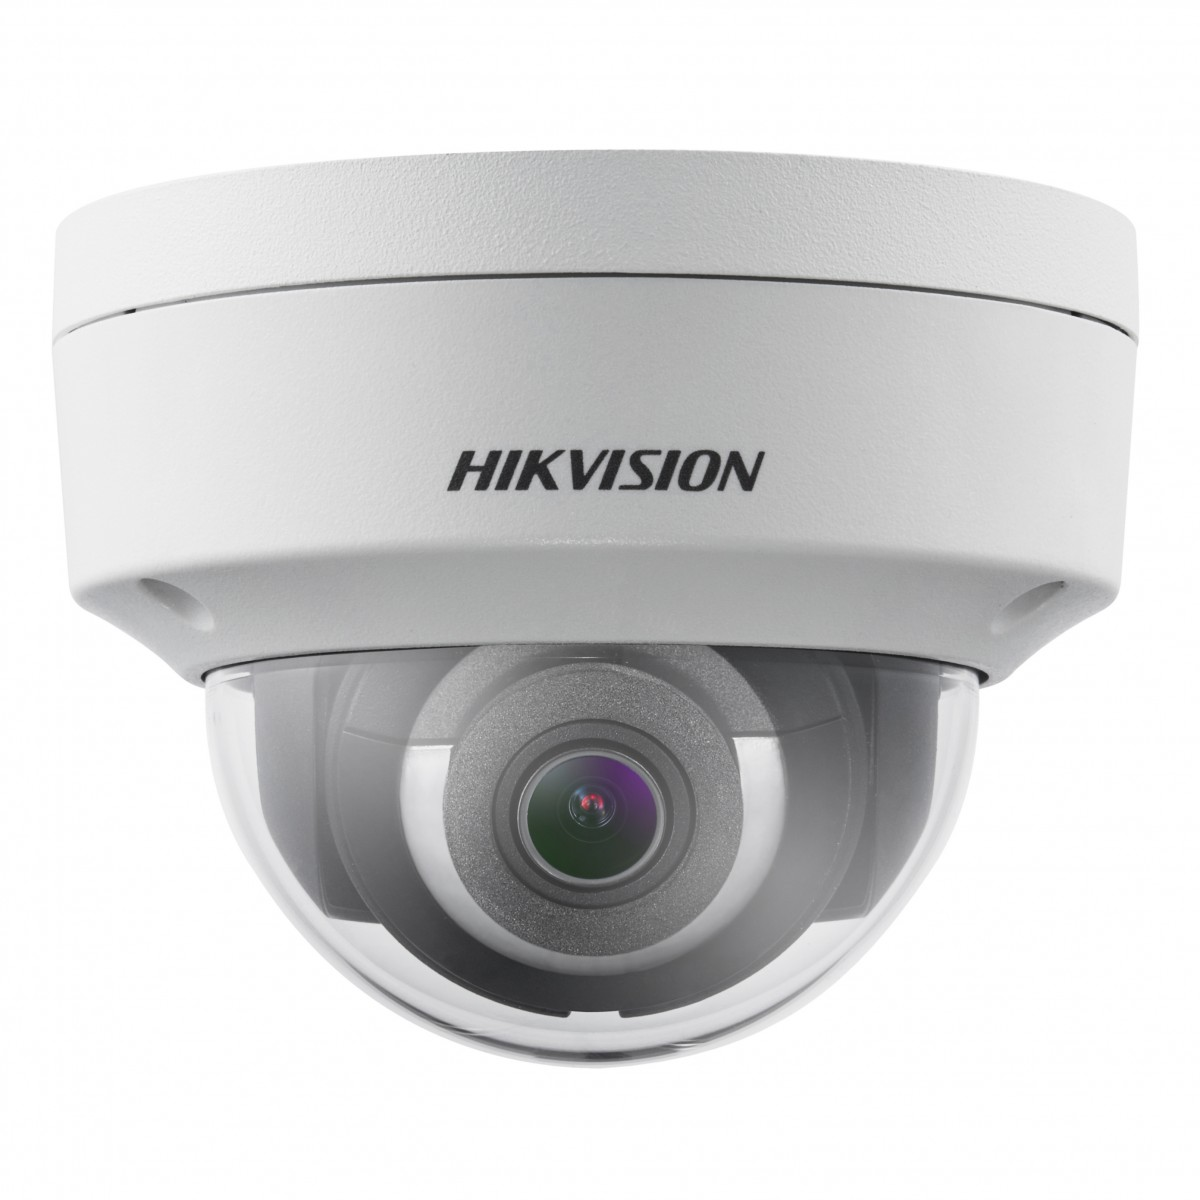 IP-камера Hikvision DS-2CD2155FWD-I